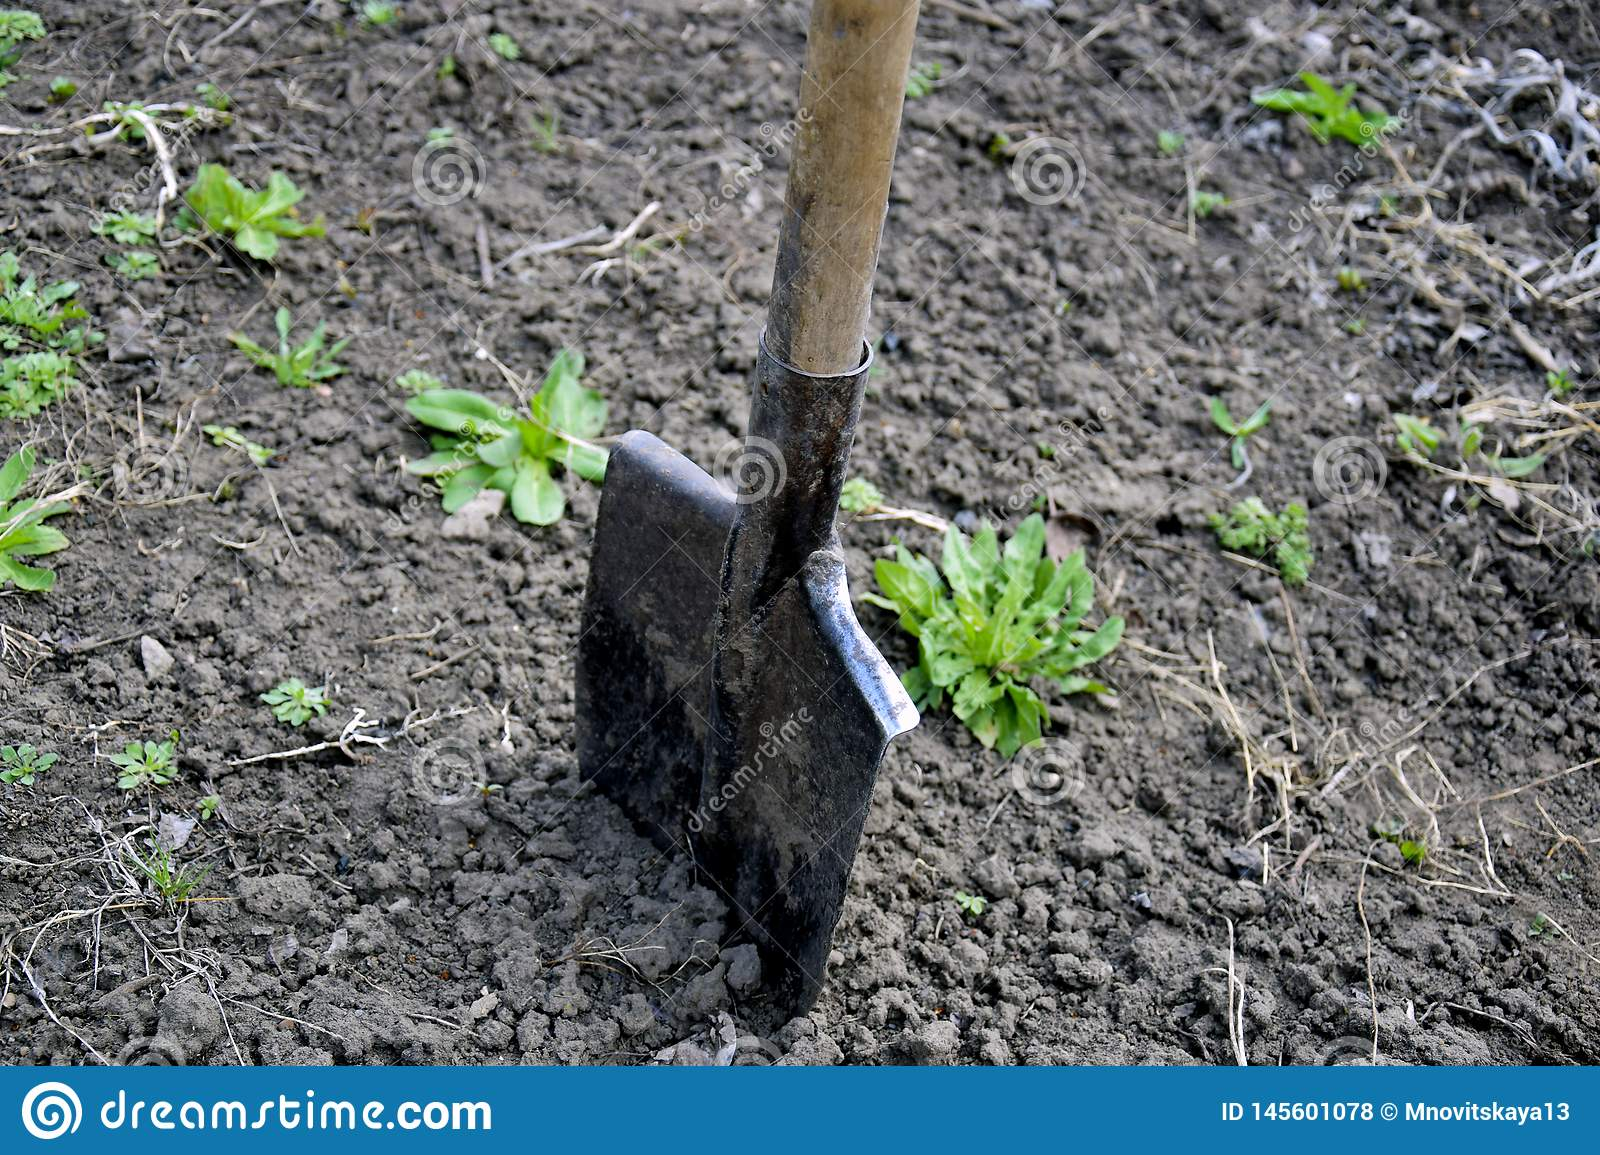 Shovel stuck in the ground in the garden area